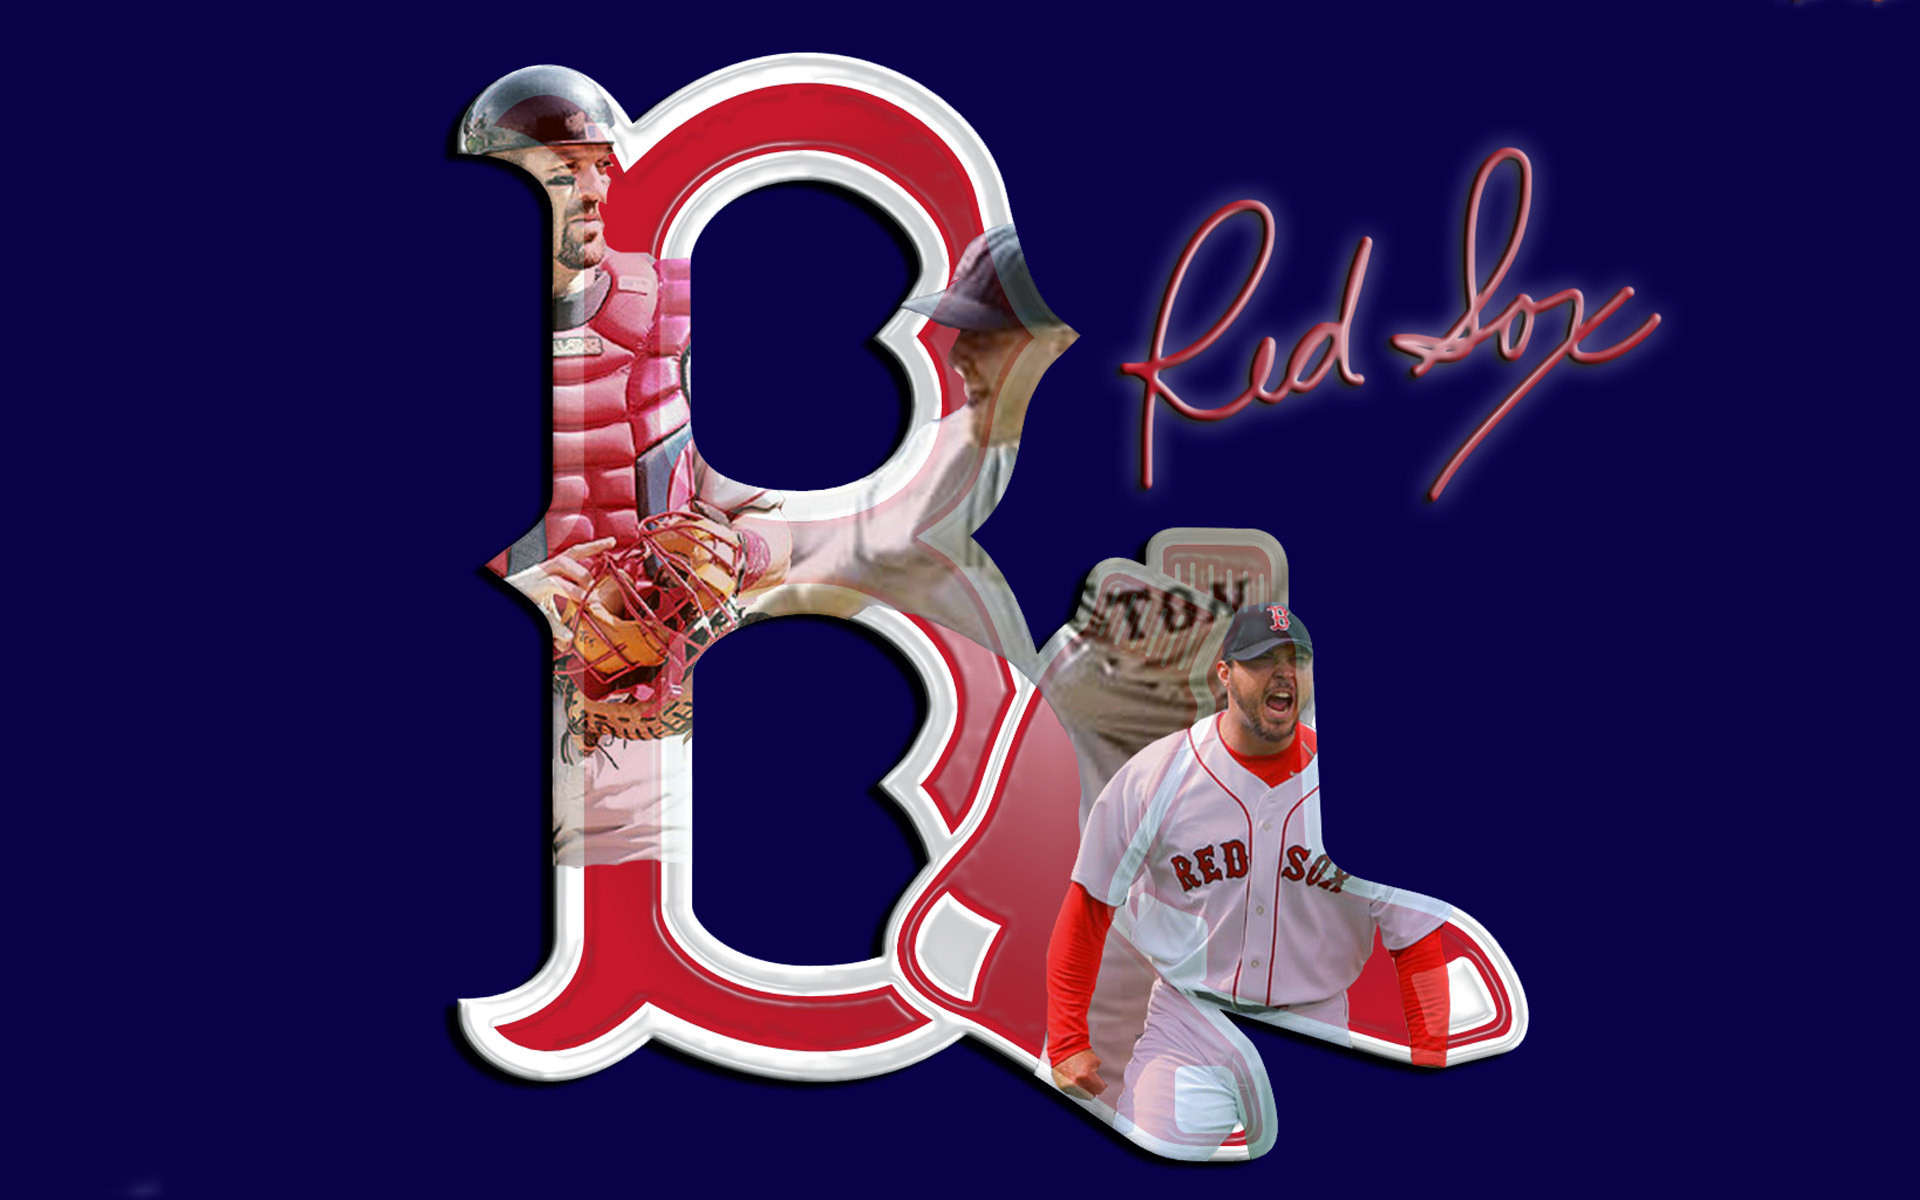 1920x1200 Boston Red Sox wallpapers | Boston Red Sox background